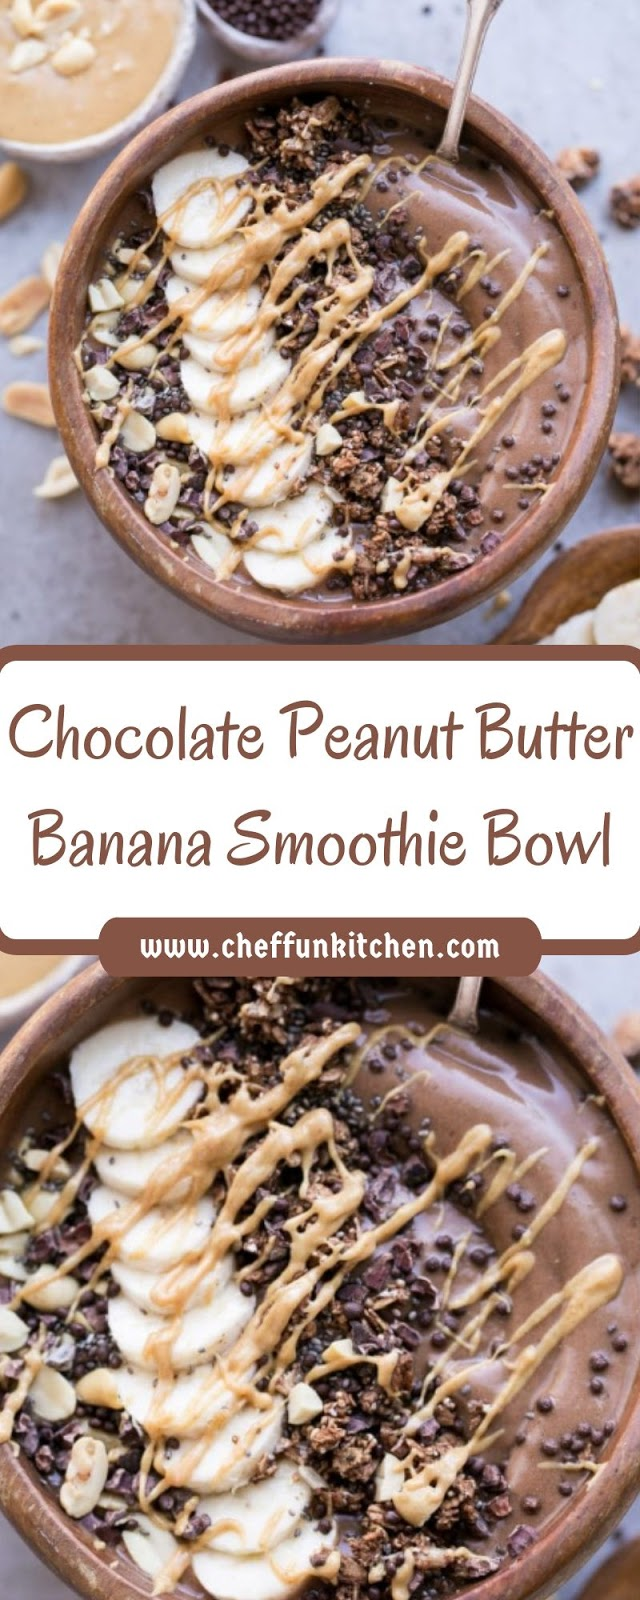 Chocolate Peanut Butter Banana Smoothie Bowl